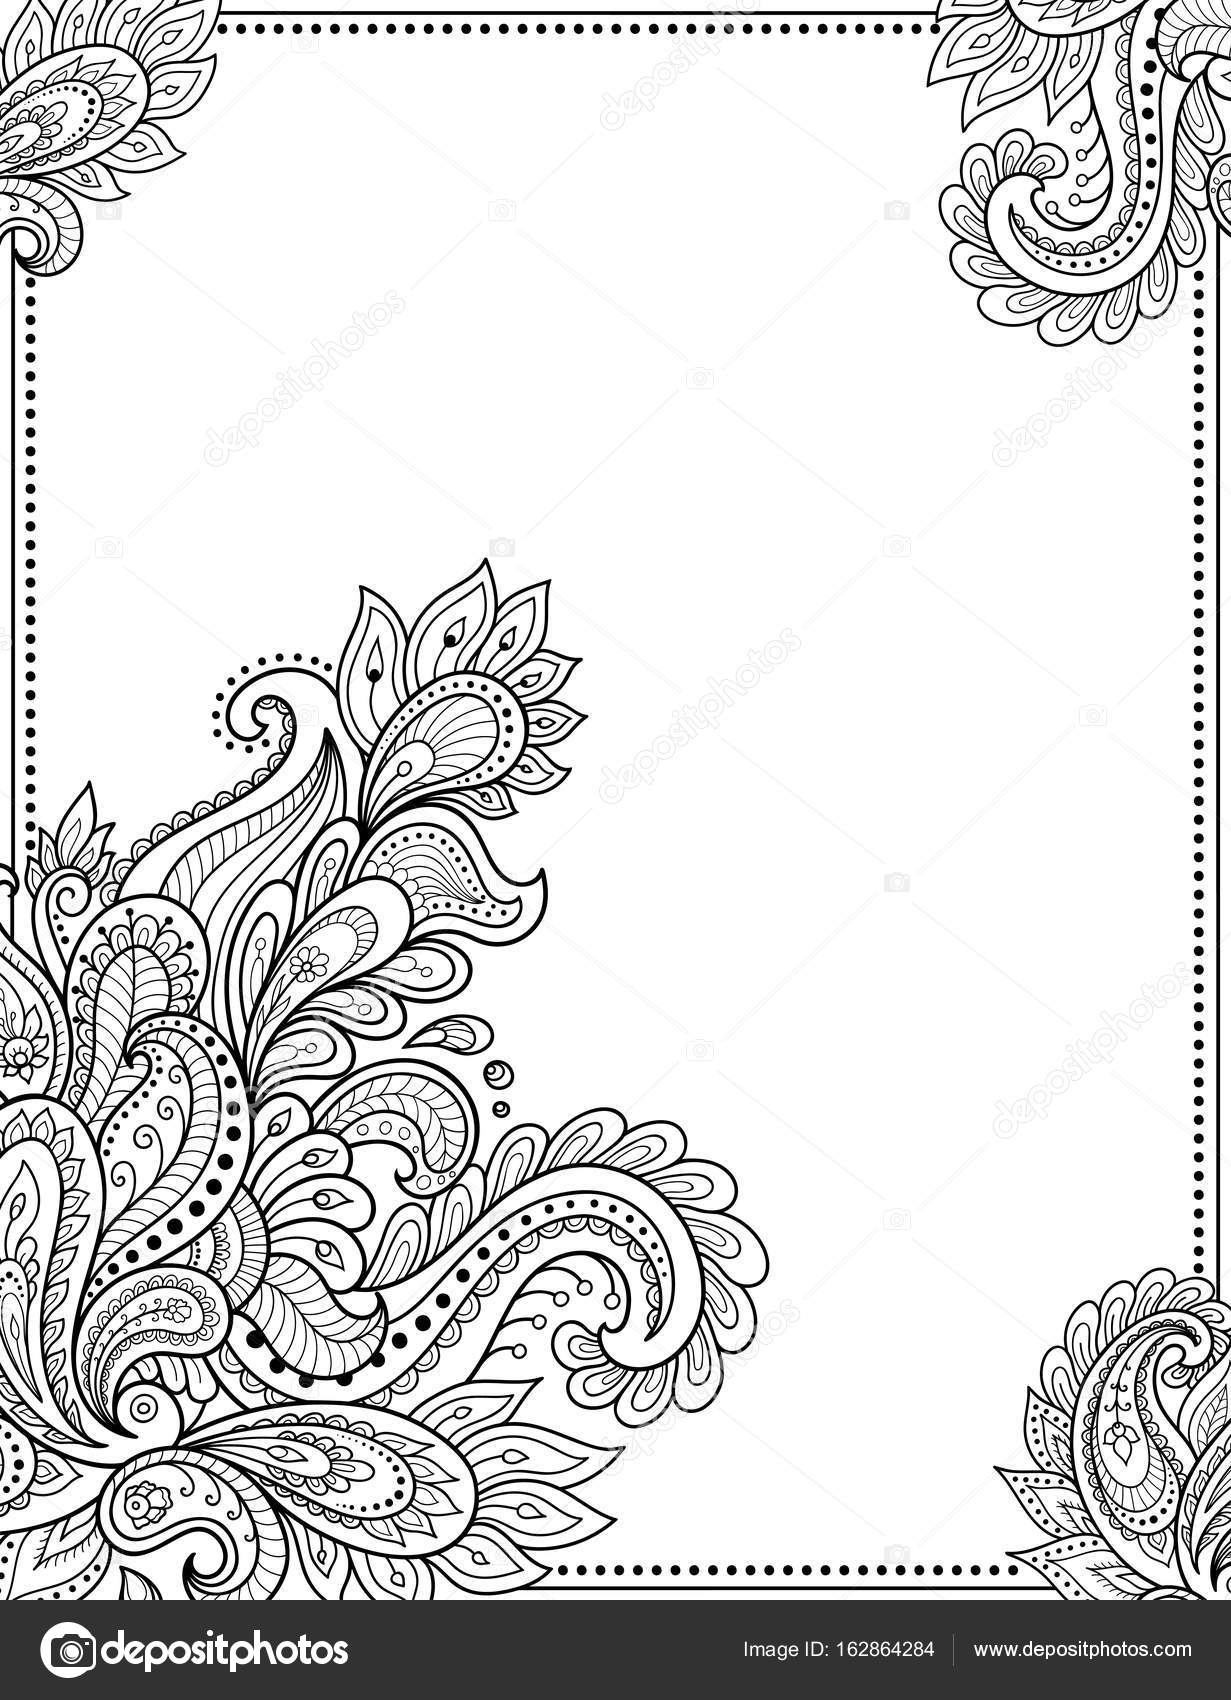 stylized with henna tattoos decorative pattern for decorating covers